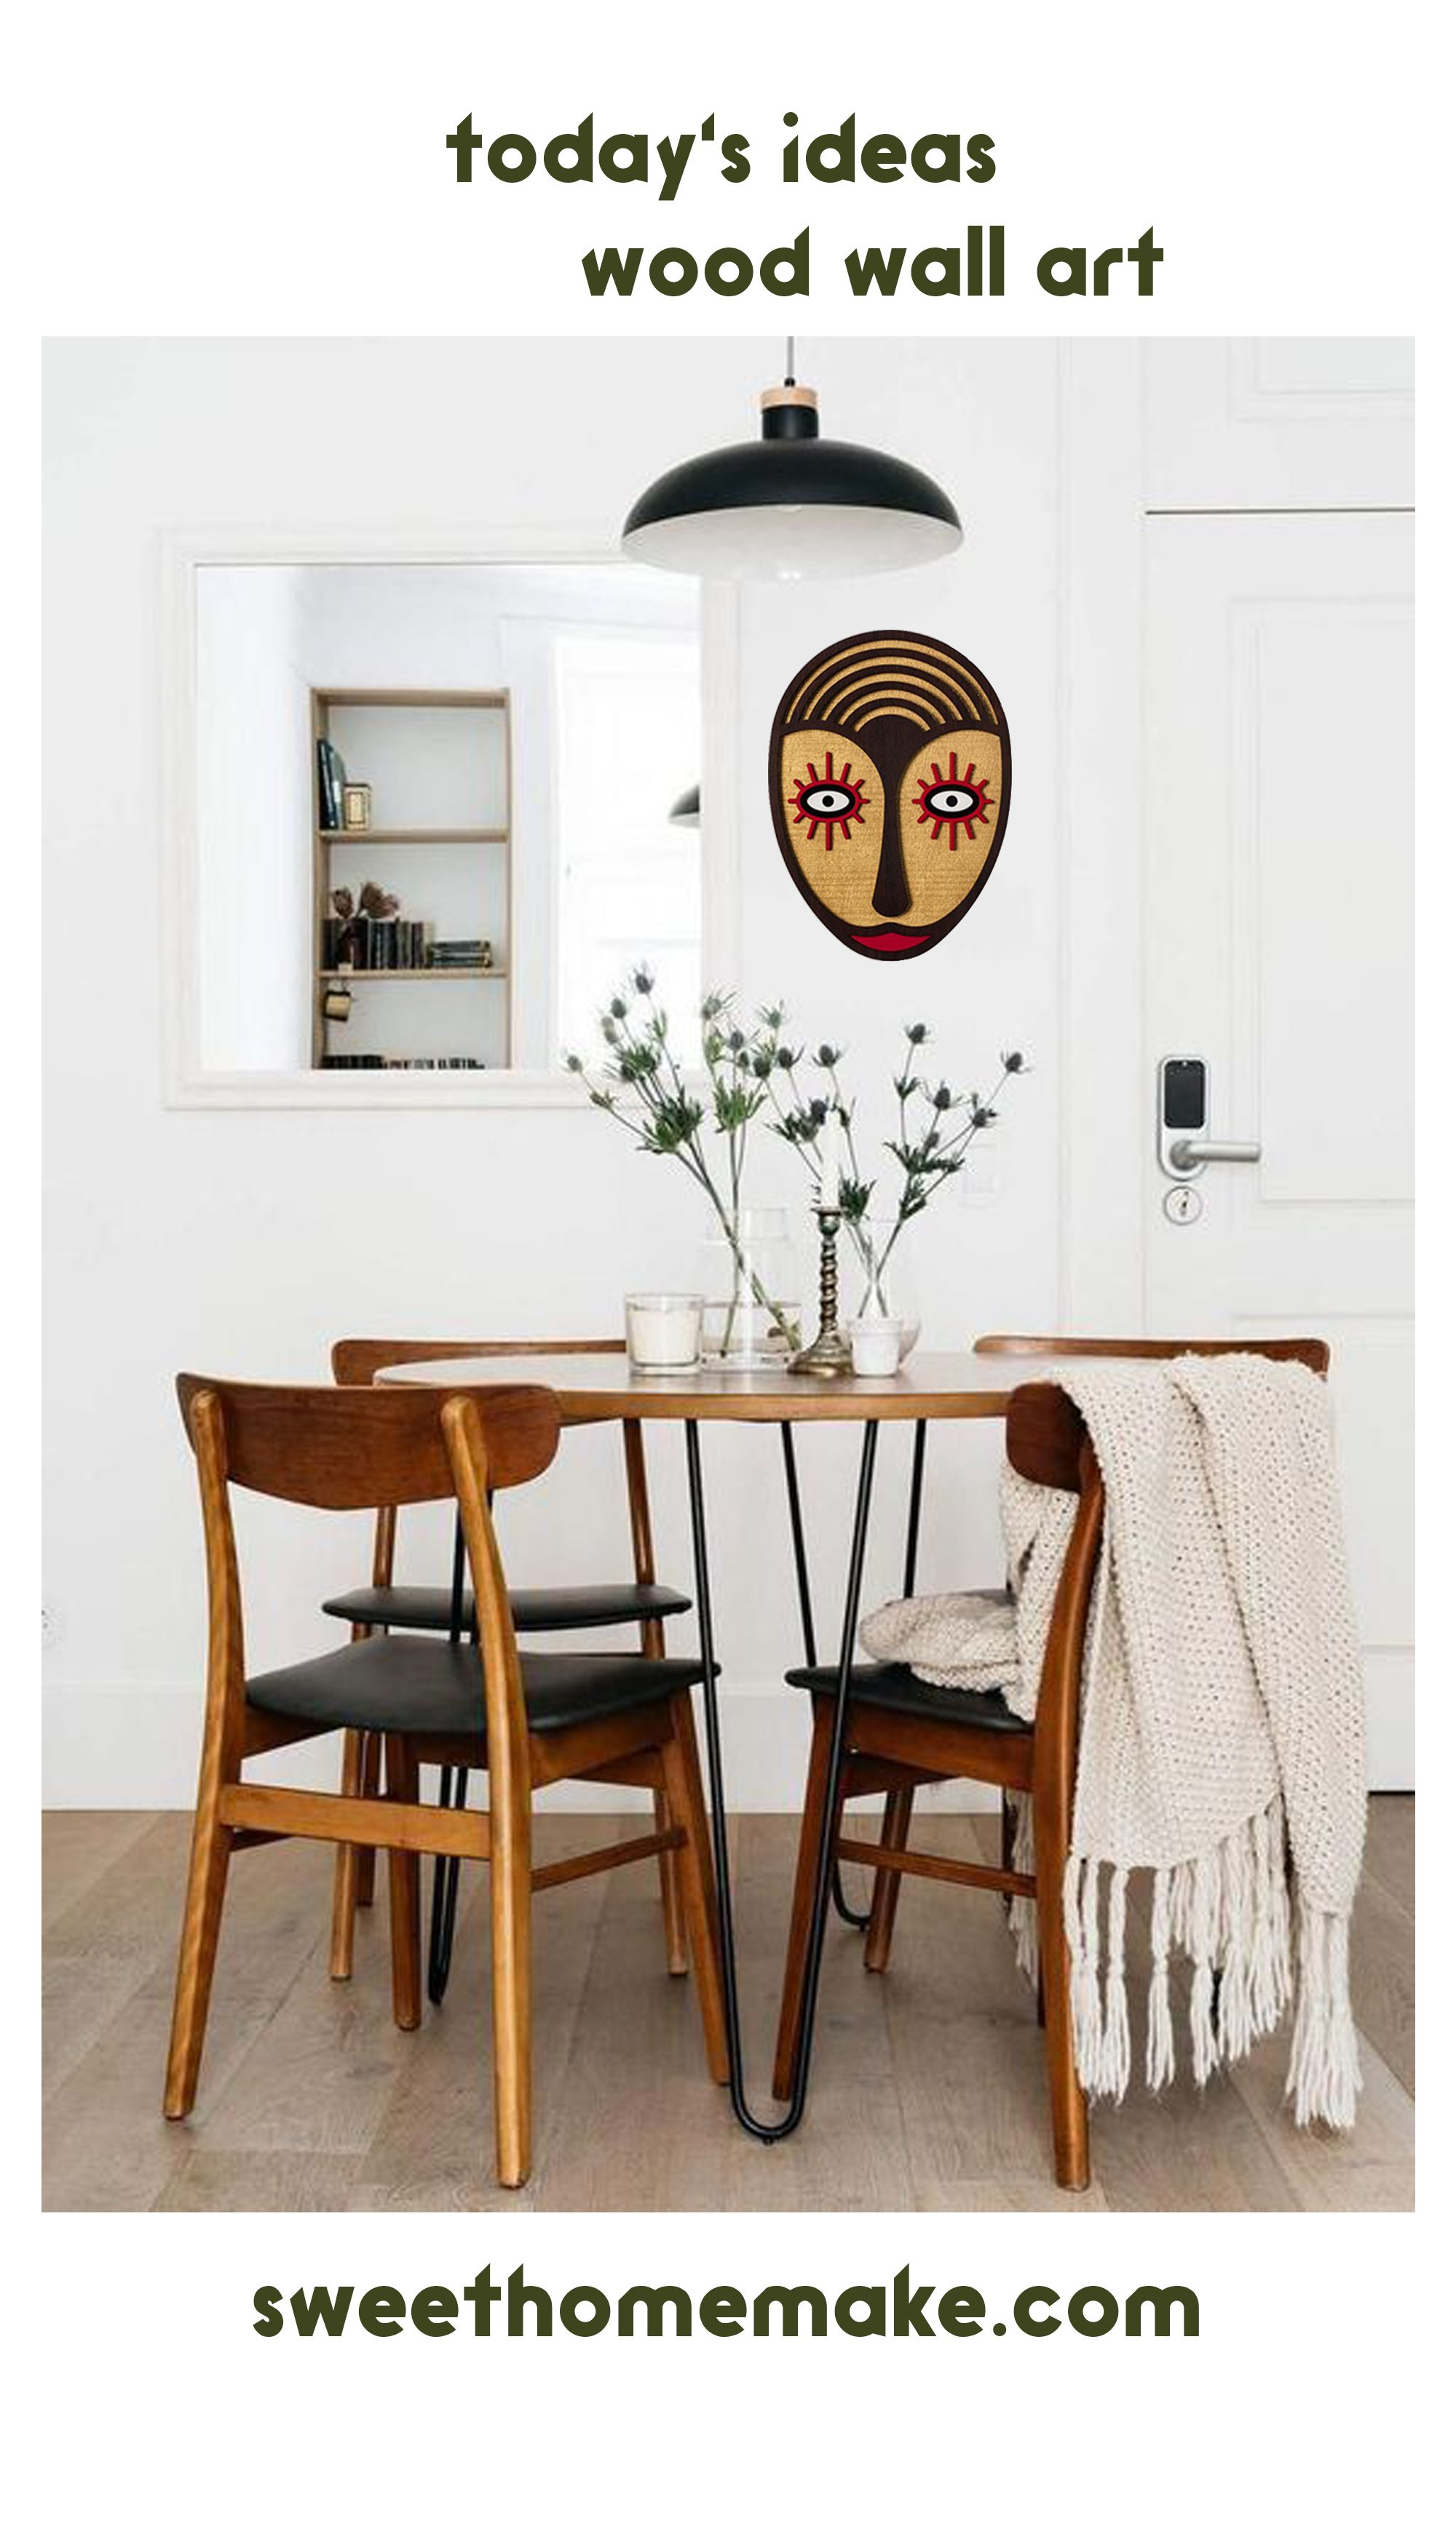 Apartment Contemporary Colorful Dining Room Ideas for Contemporary Wall Decor images